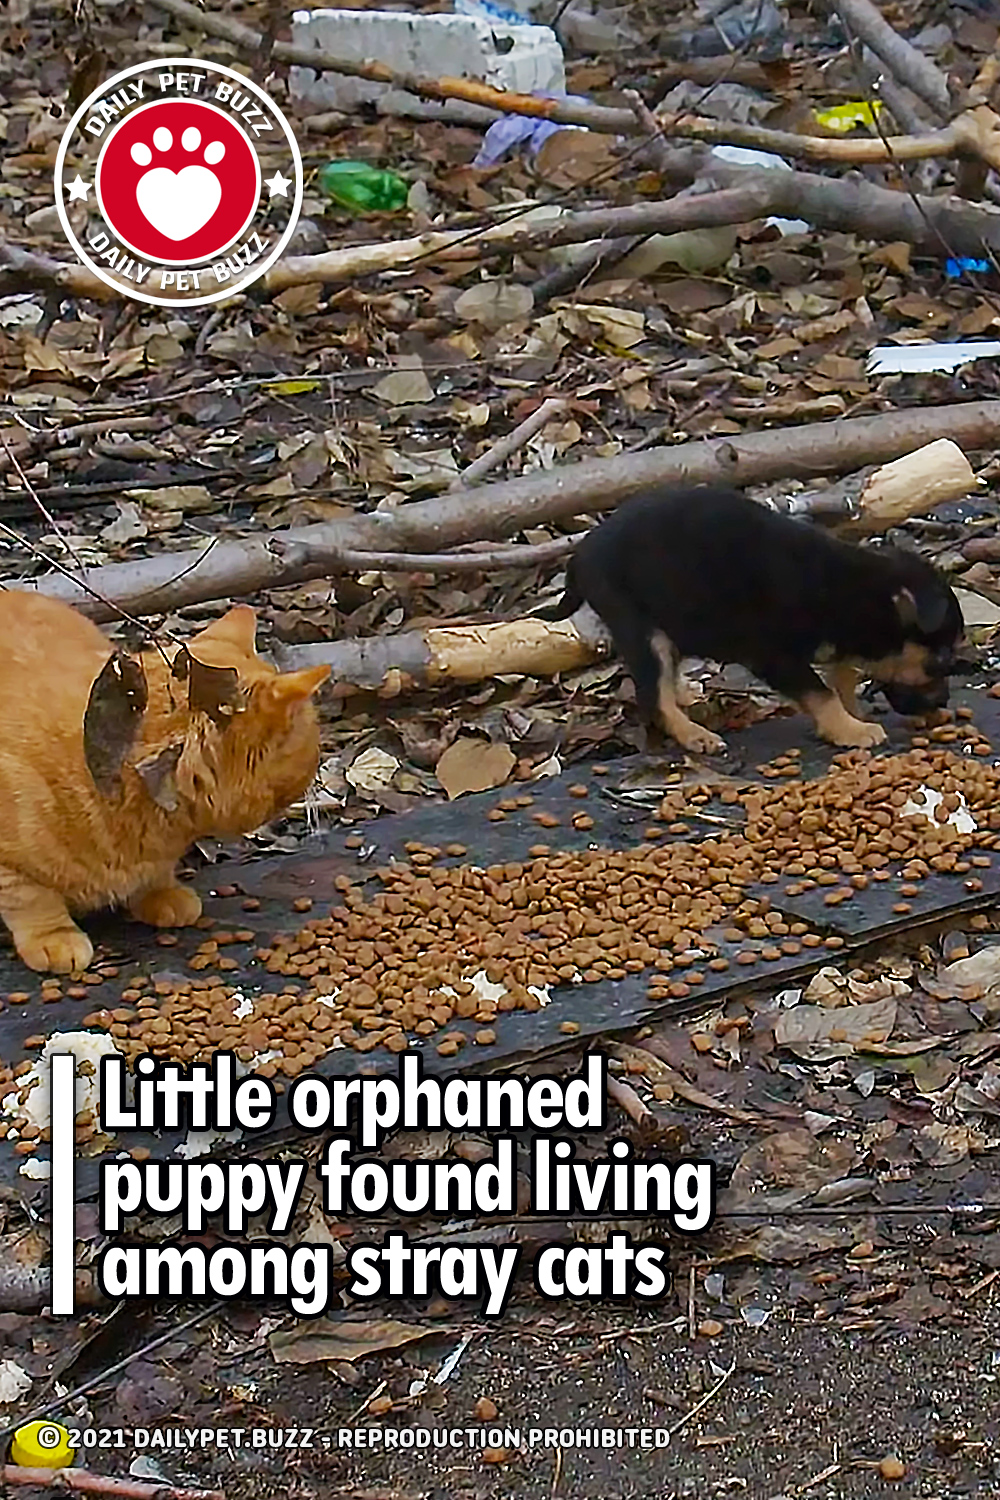 Little orphaned puppy found living among stray cats